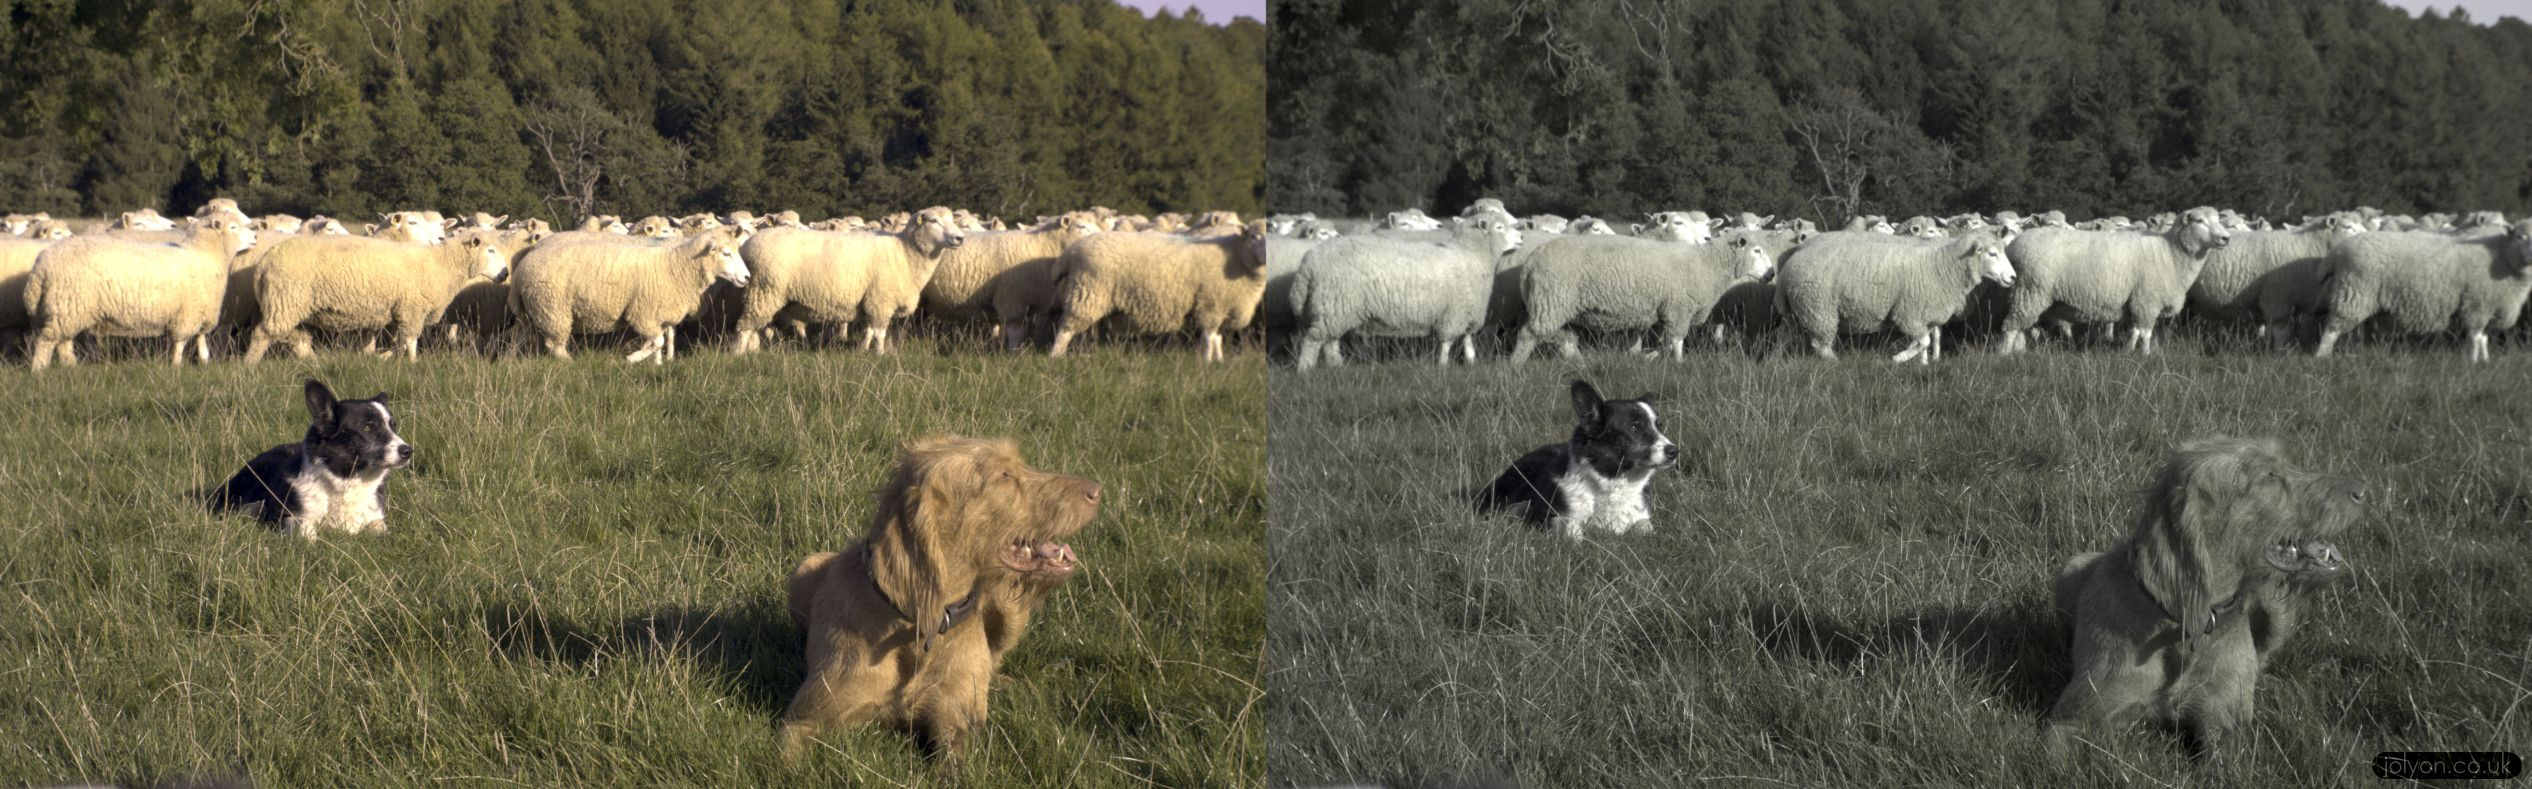 On the left is how we humans see the sheep and sheep-dogs, while on the right is how they see each-other. It's interesting to see that the red/brown wire-haired visler blends into the grass, while the black and white collie sticks out easily.